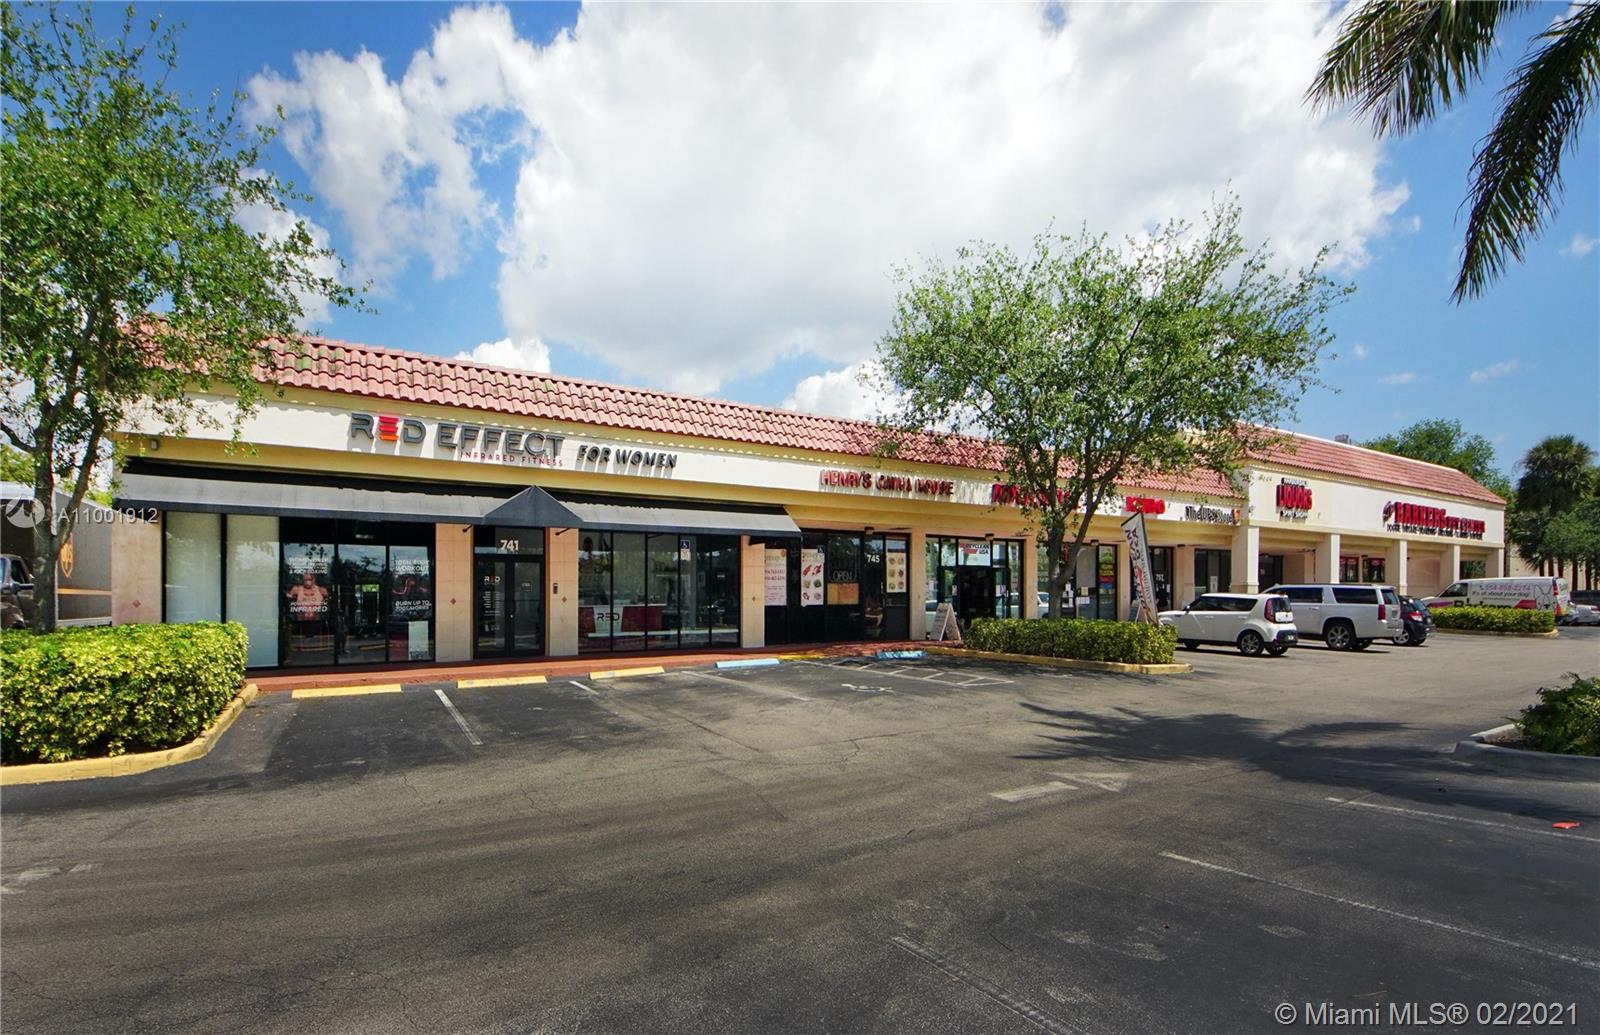 2 space options: Unit 737 is 3,239 sq ft and is a plug and play retail space is perfect for fitness center, studio or gym but is flexible to have open retail area, office space along with conference and private rooms. There is plenty of room to position you ultimate business set-up and streamline the floorplan for efficiency and work/customer flow. Unit 759 is 2,165 sq ft and set up for the ultimate flex space.